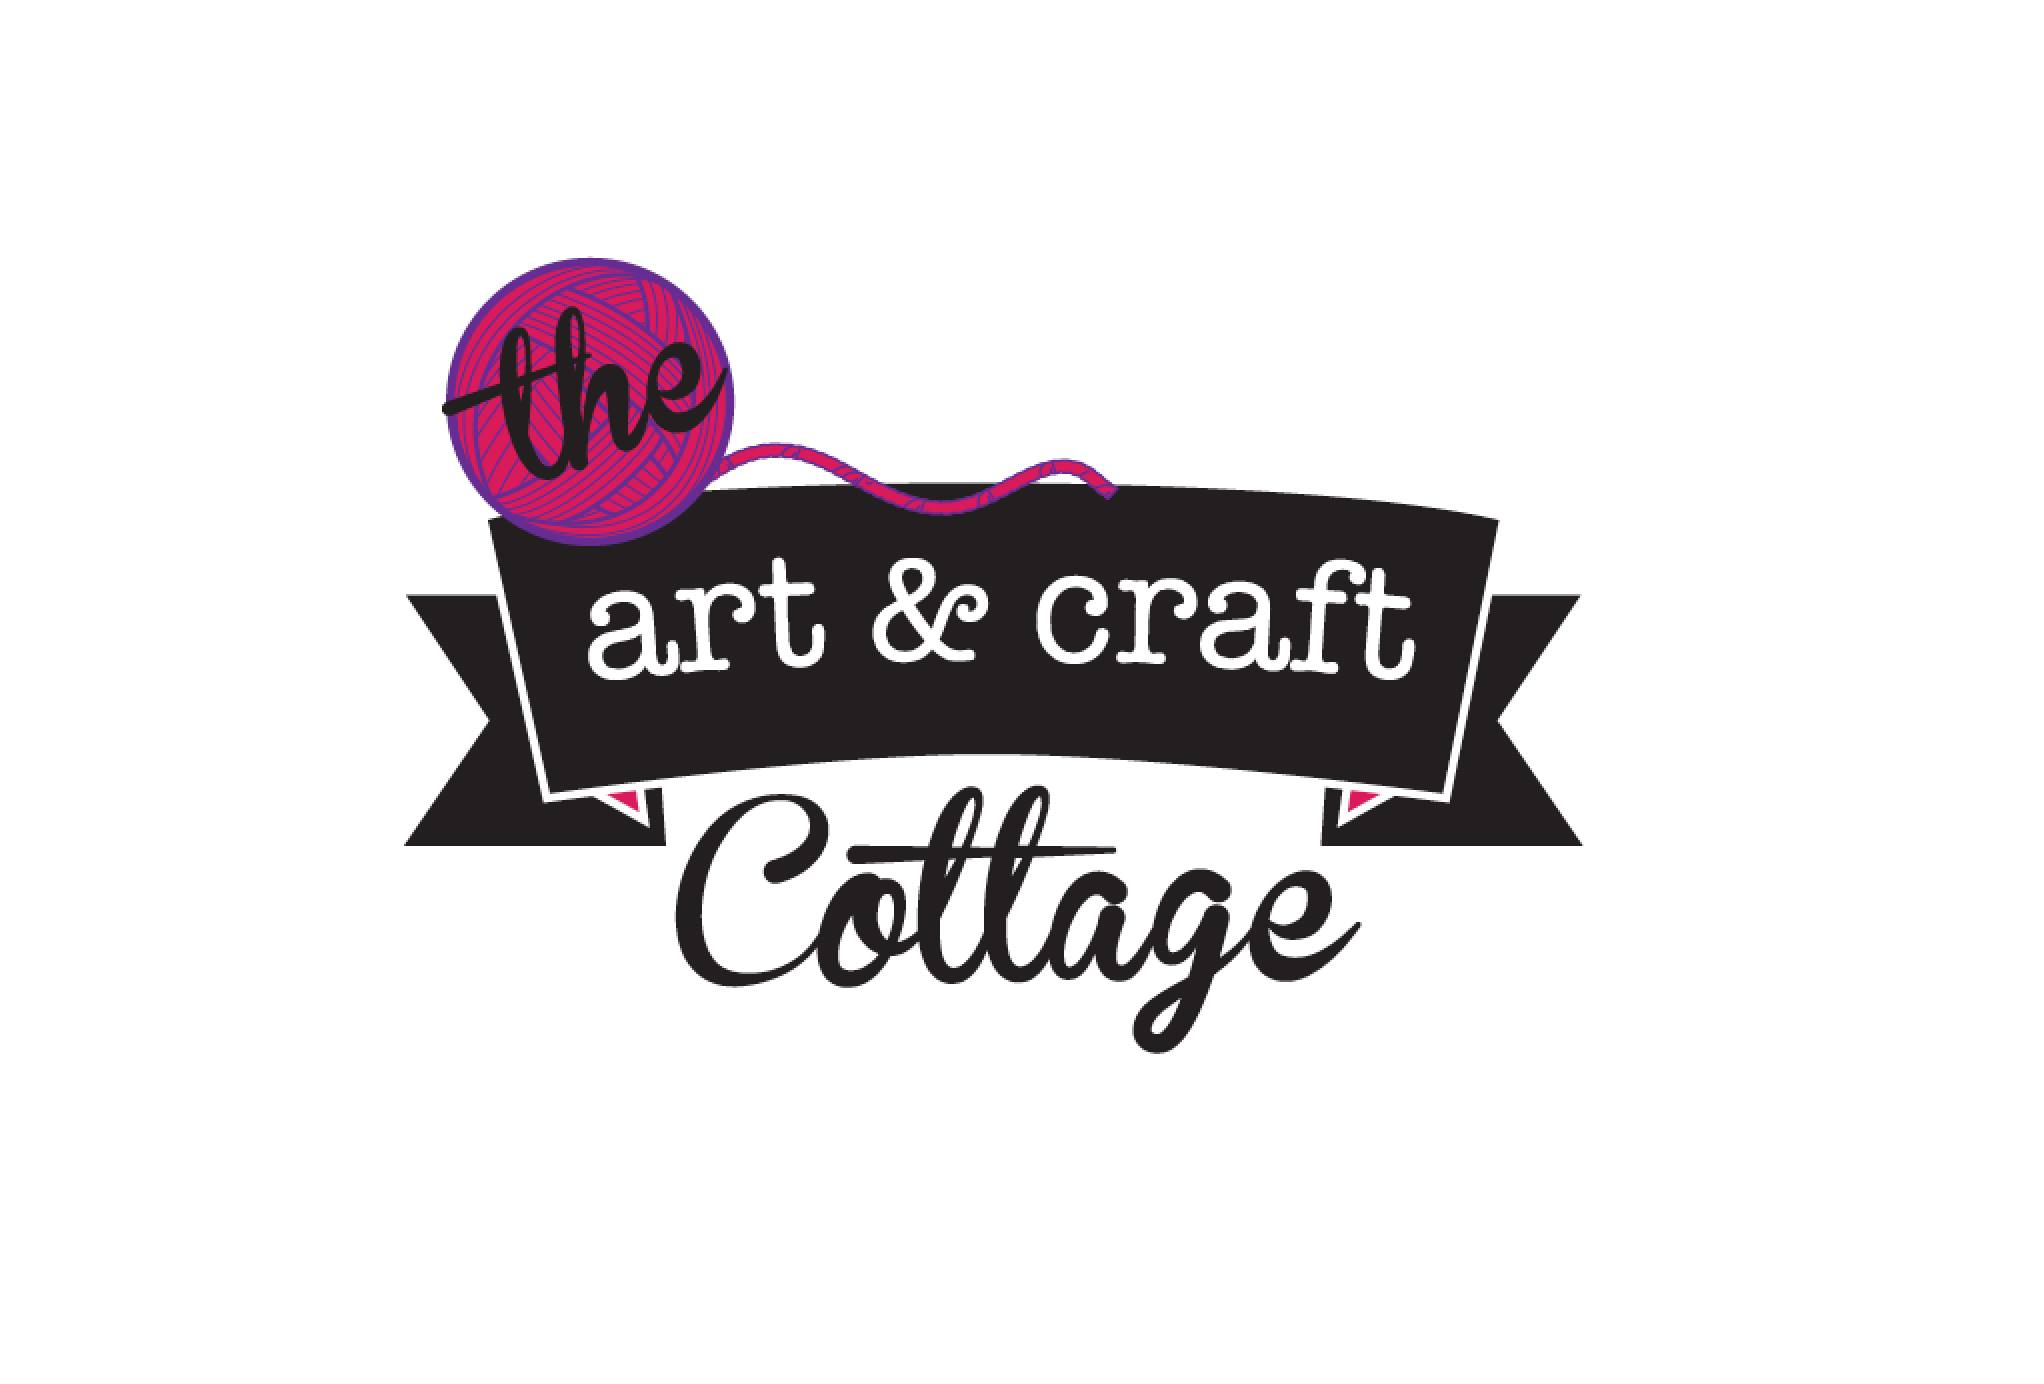 TheArtandCraftCottage